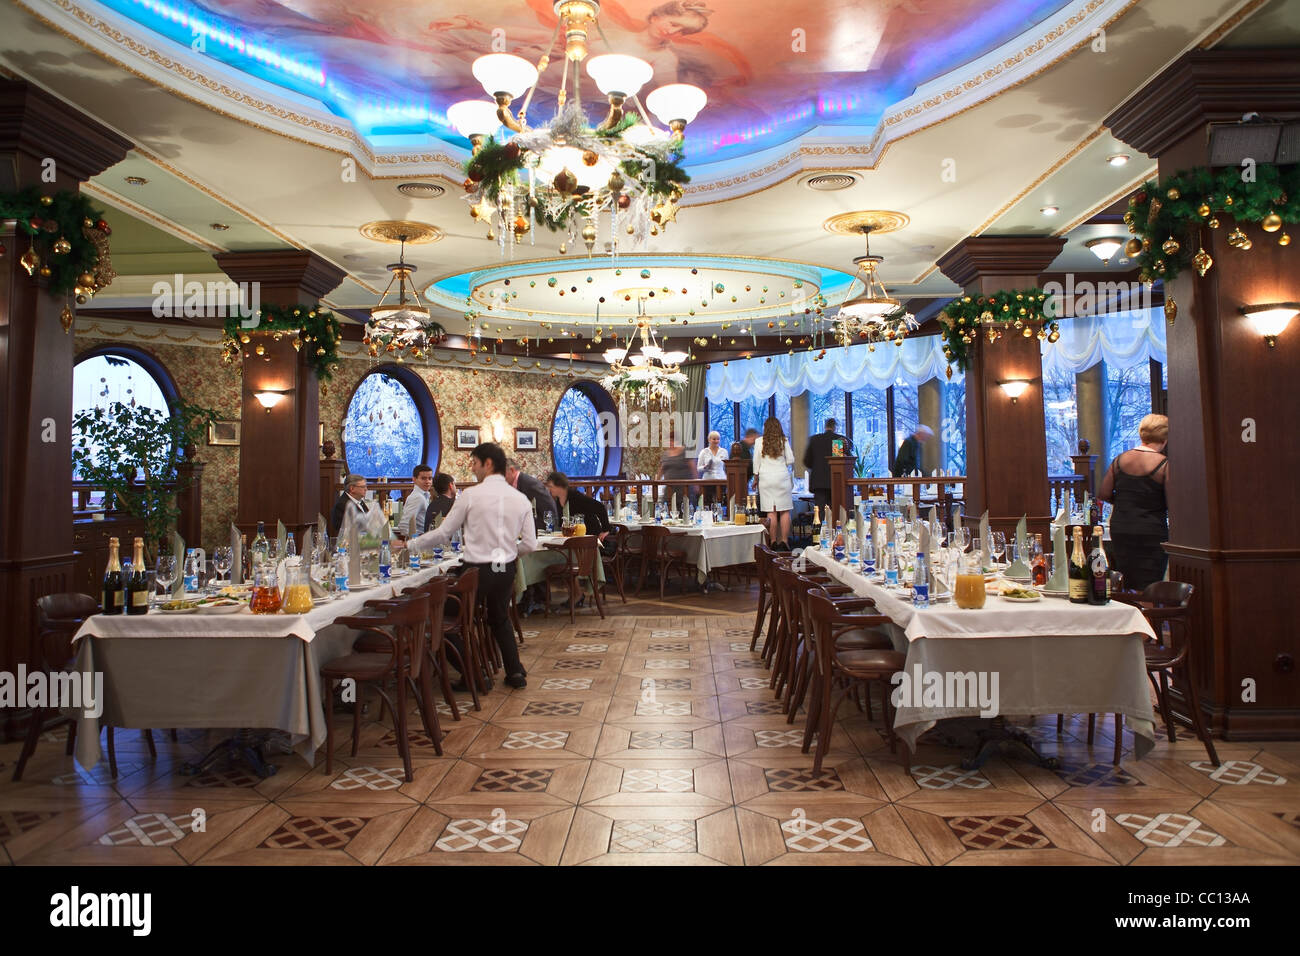 Russian Restaurant. Detail Of A Fancy Table Set For Christmas Dinner Party  For Lot Of Persons. Waiters Serving Tables